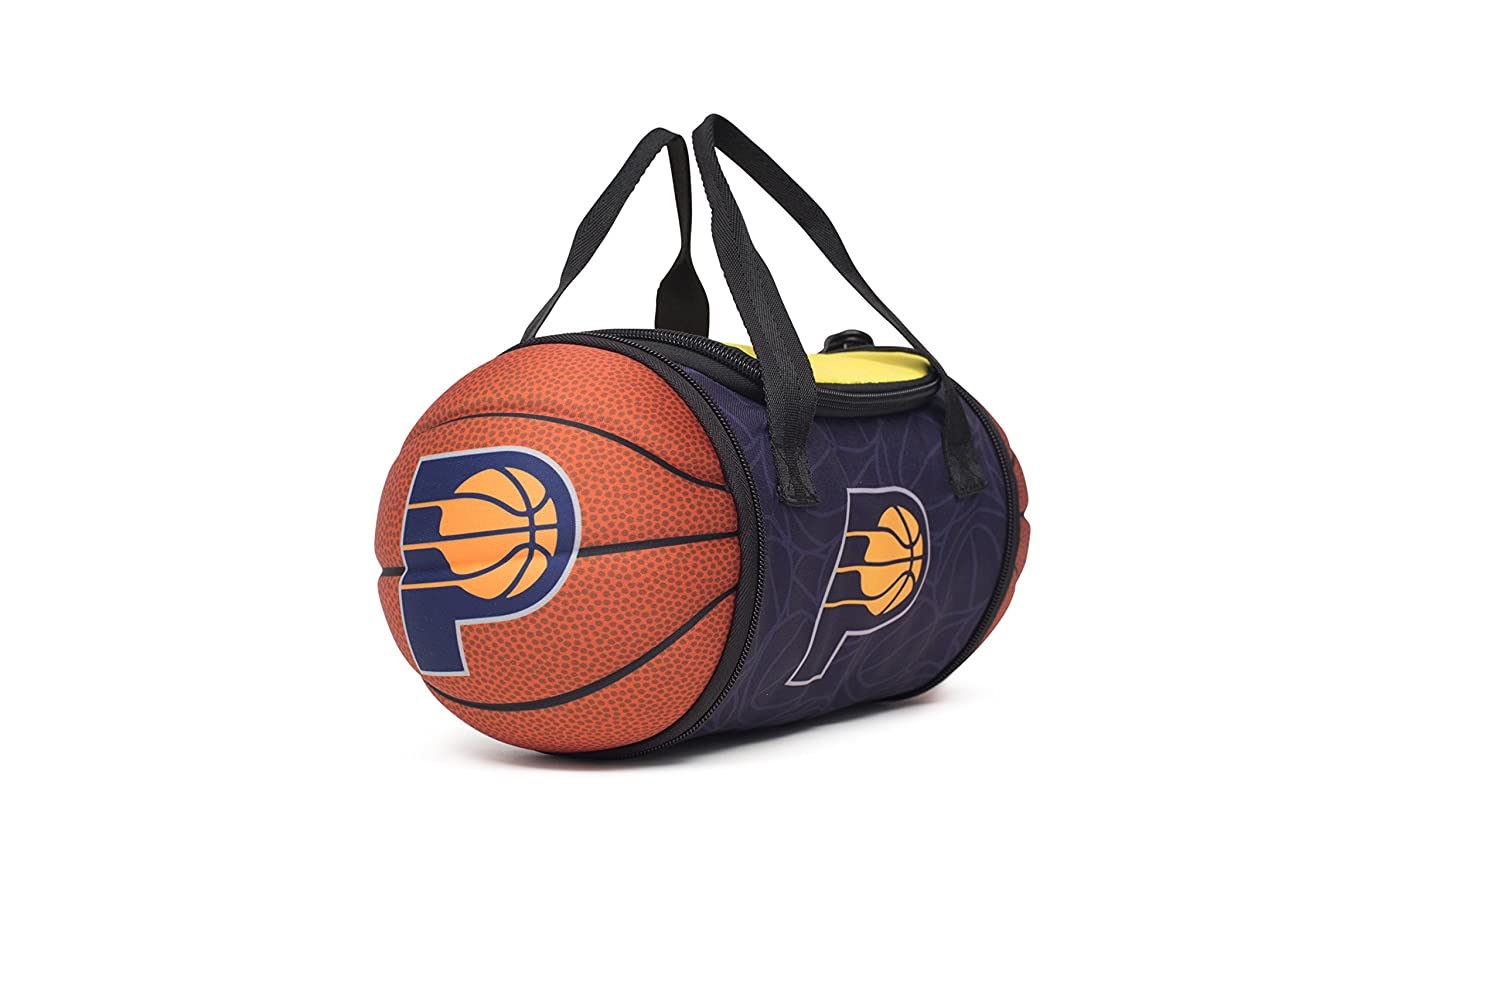 INDIANA PACERS BASKETBALL TO LUNCH AUTHENTIC Maccabi Art